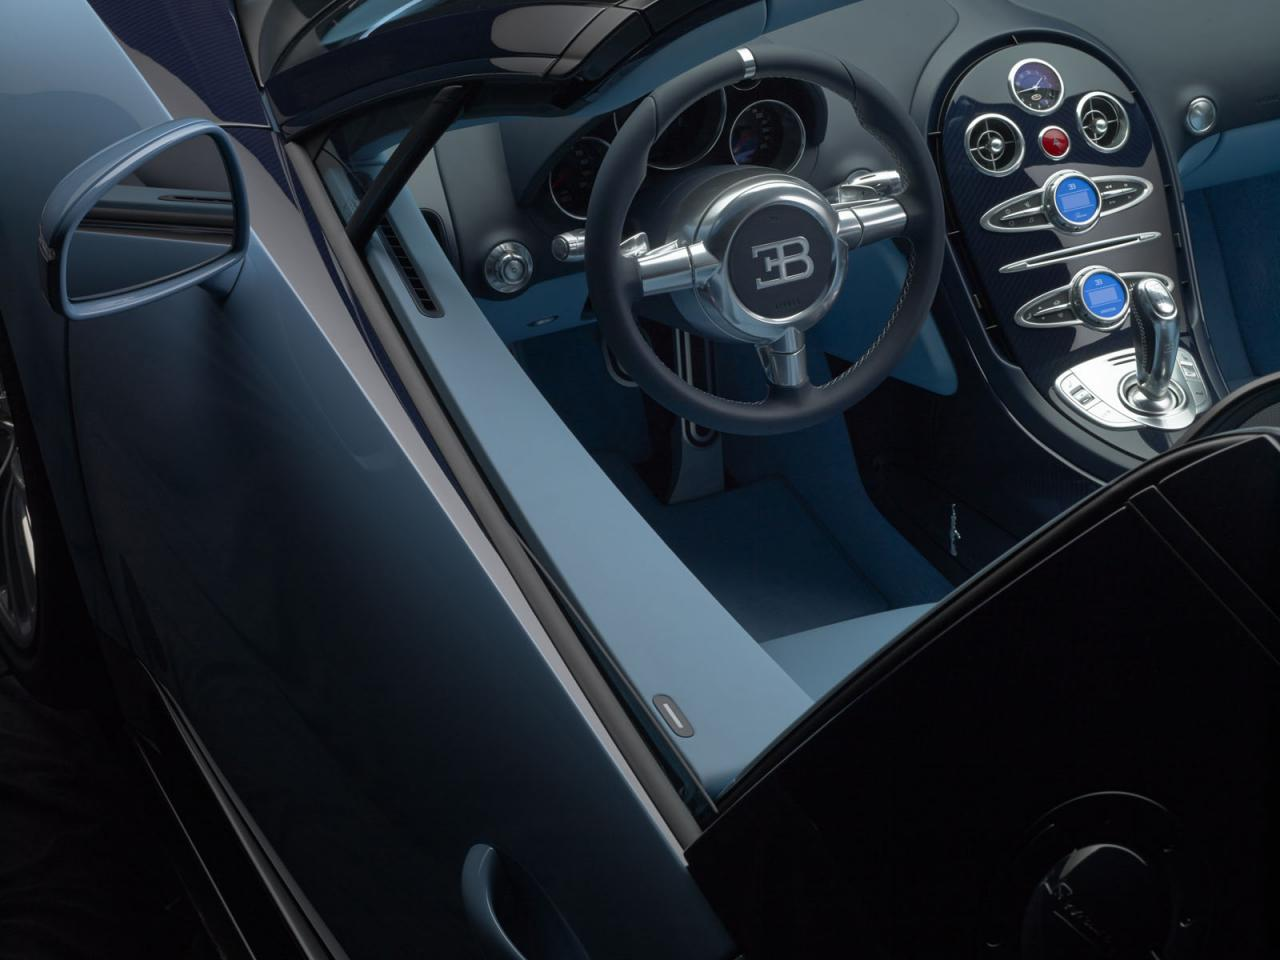 bugatti veyron gs vitesse 39 jean pierre wimille legend edition 39 unveil. Black Bedroom Furniture Sets. Home Design Ideas